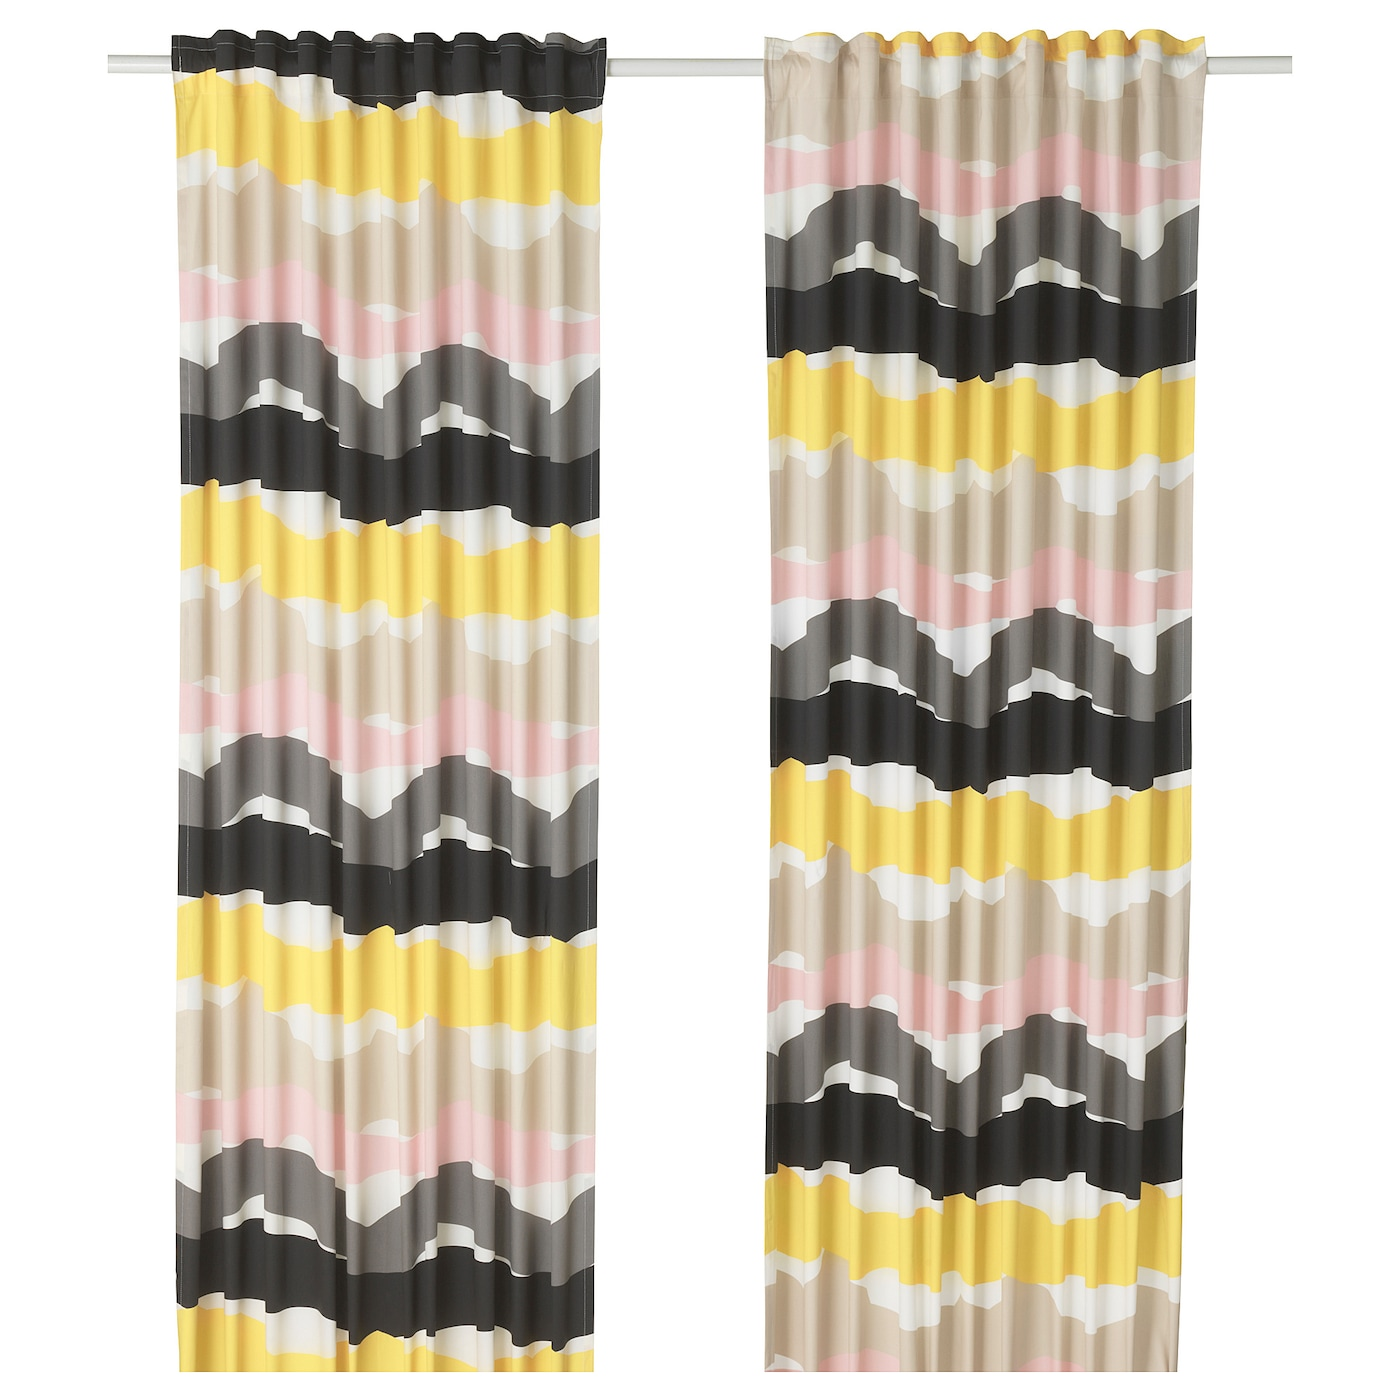 IKEA ODDVEIG curtains, 1 pair The curtains can be used on a curtain rod or a curtain track.